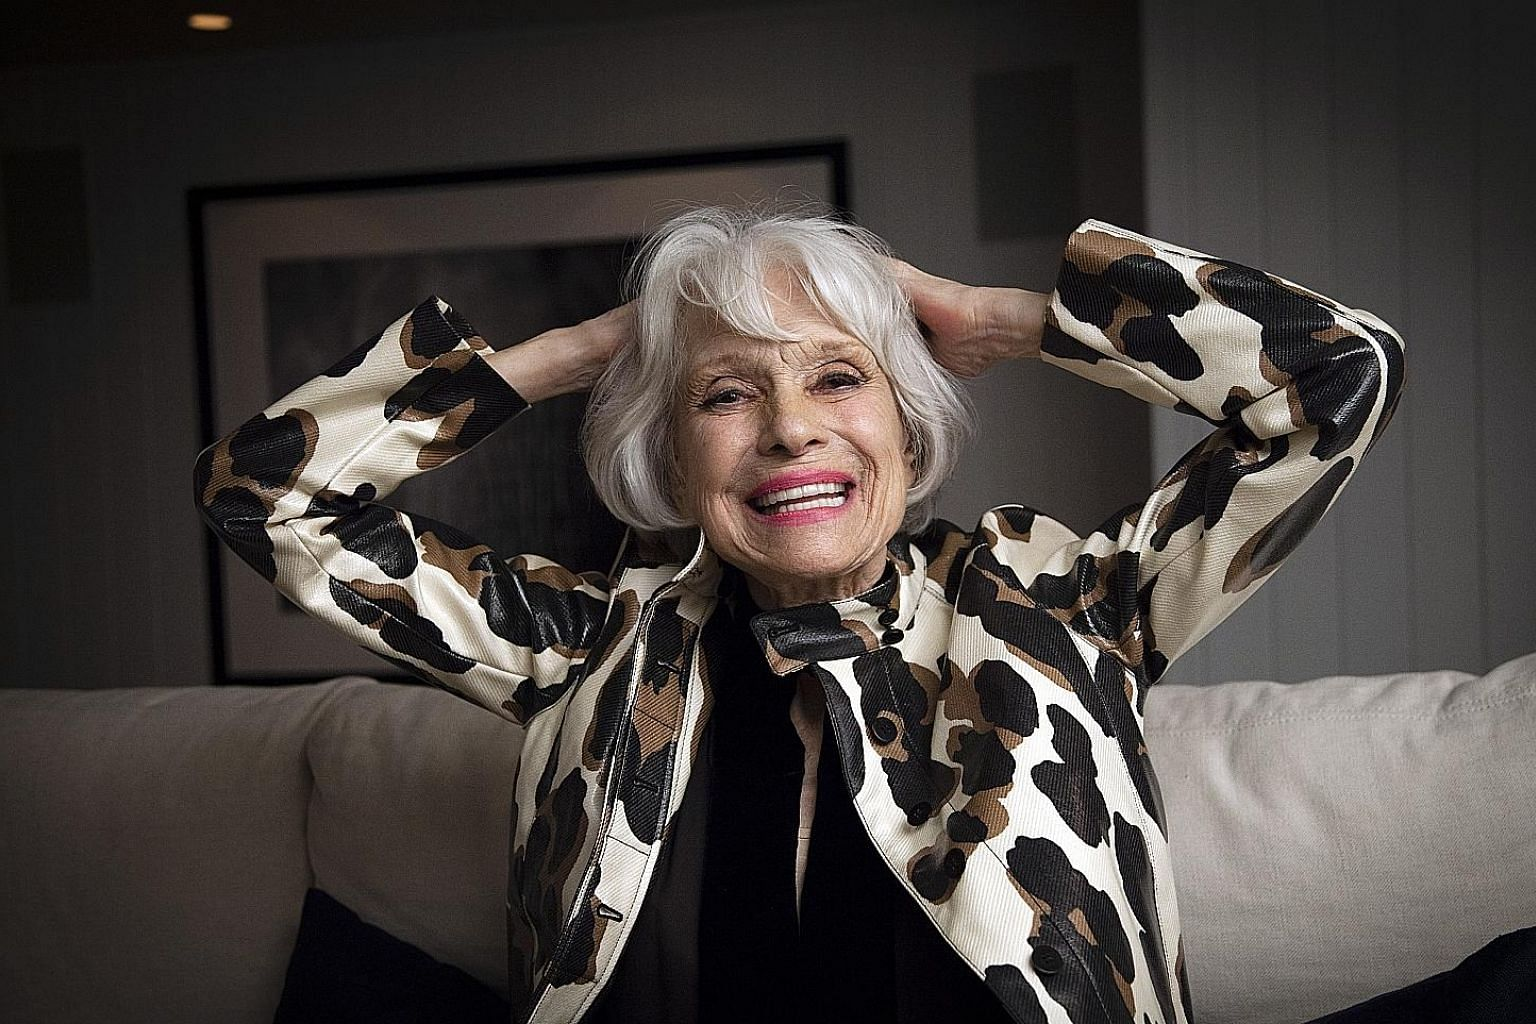 Carol Channing was known for her performances in Gentlemen Prefer Blondes and Hello, Dolly!.